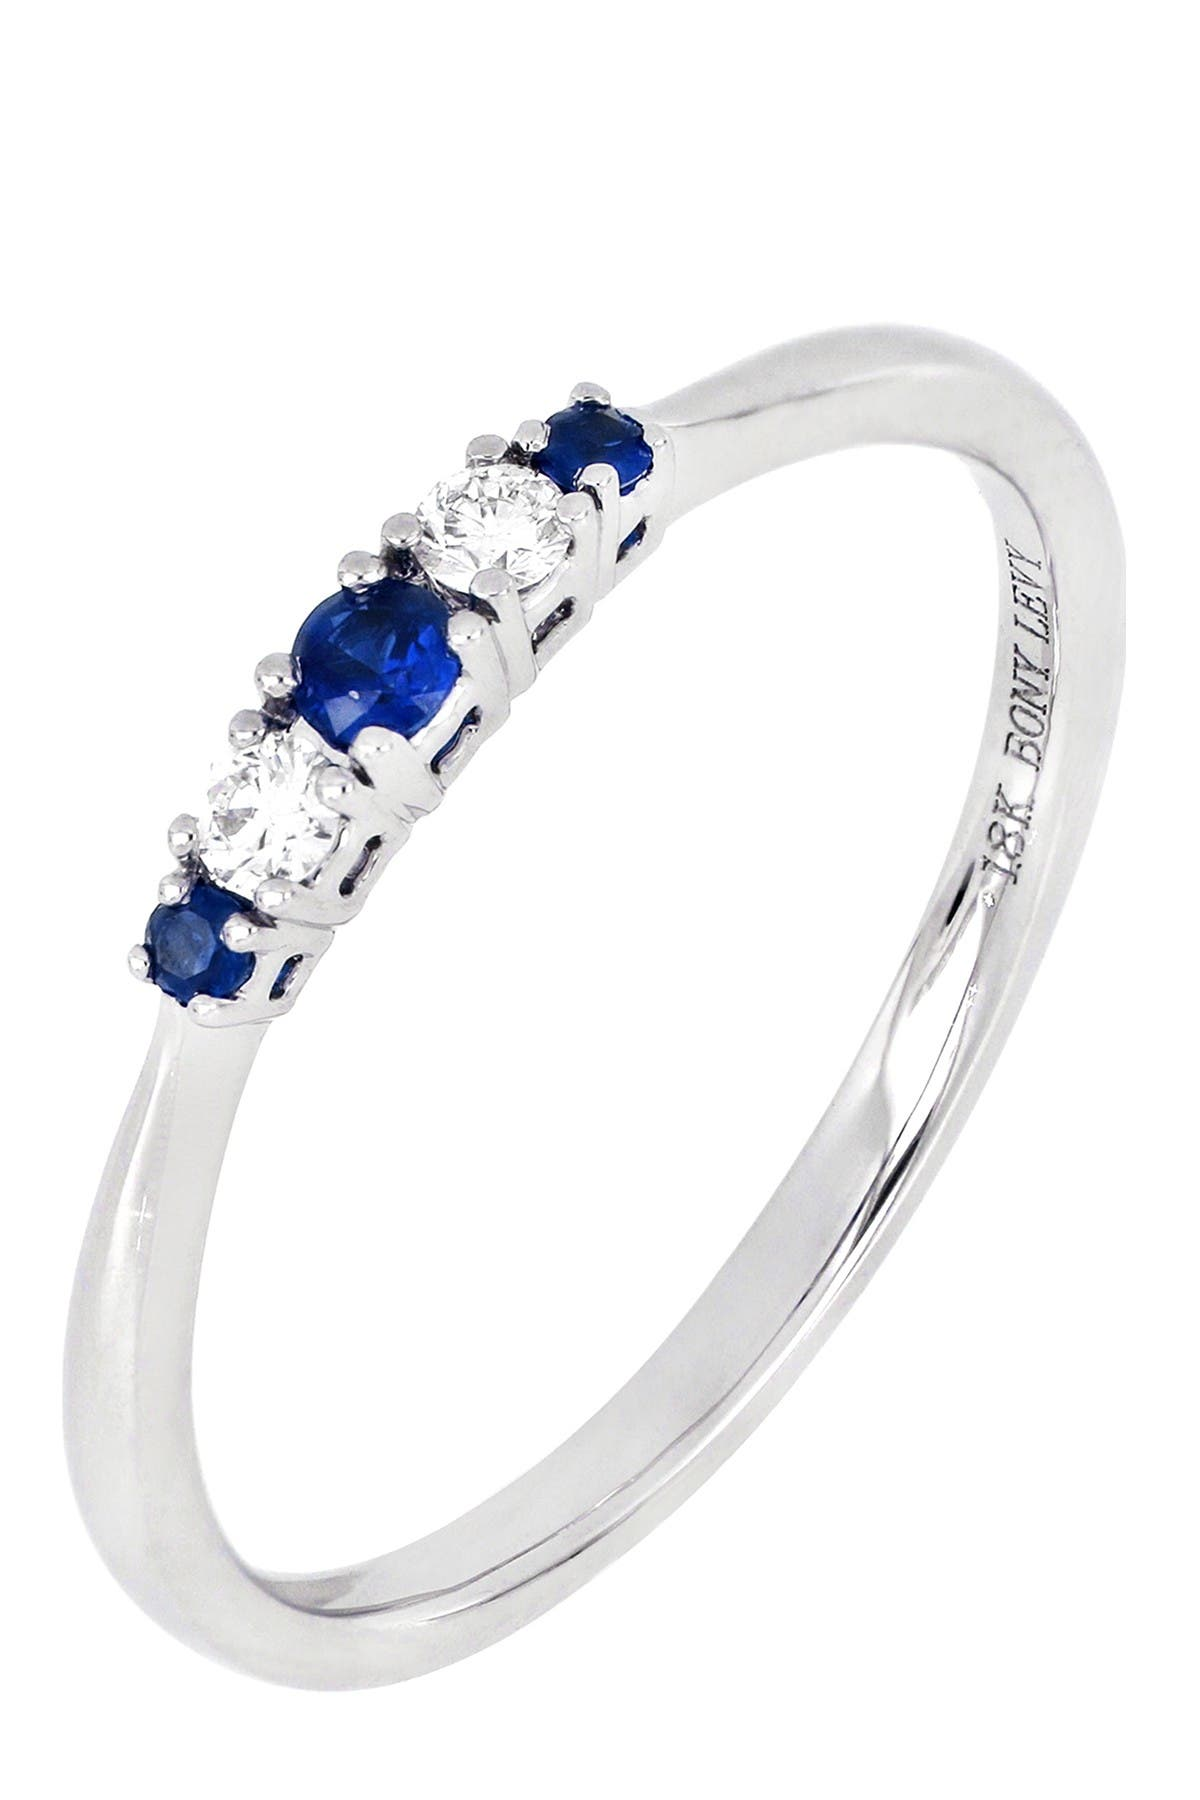 Image of Bony Levy 18K White Gold Prong Set Sapphire & Diamond Stackable Band  - 0.07 ctwRing